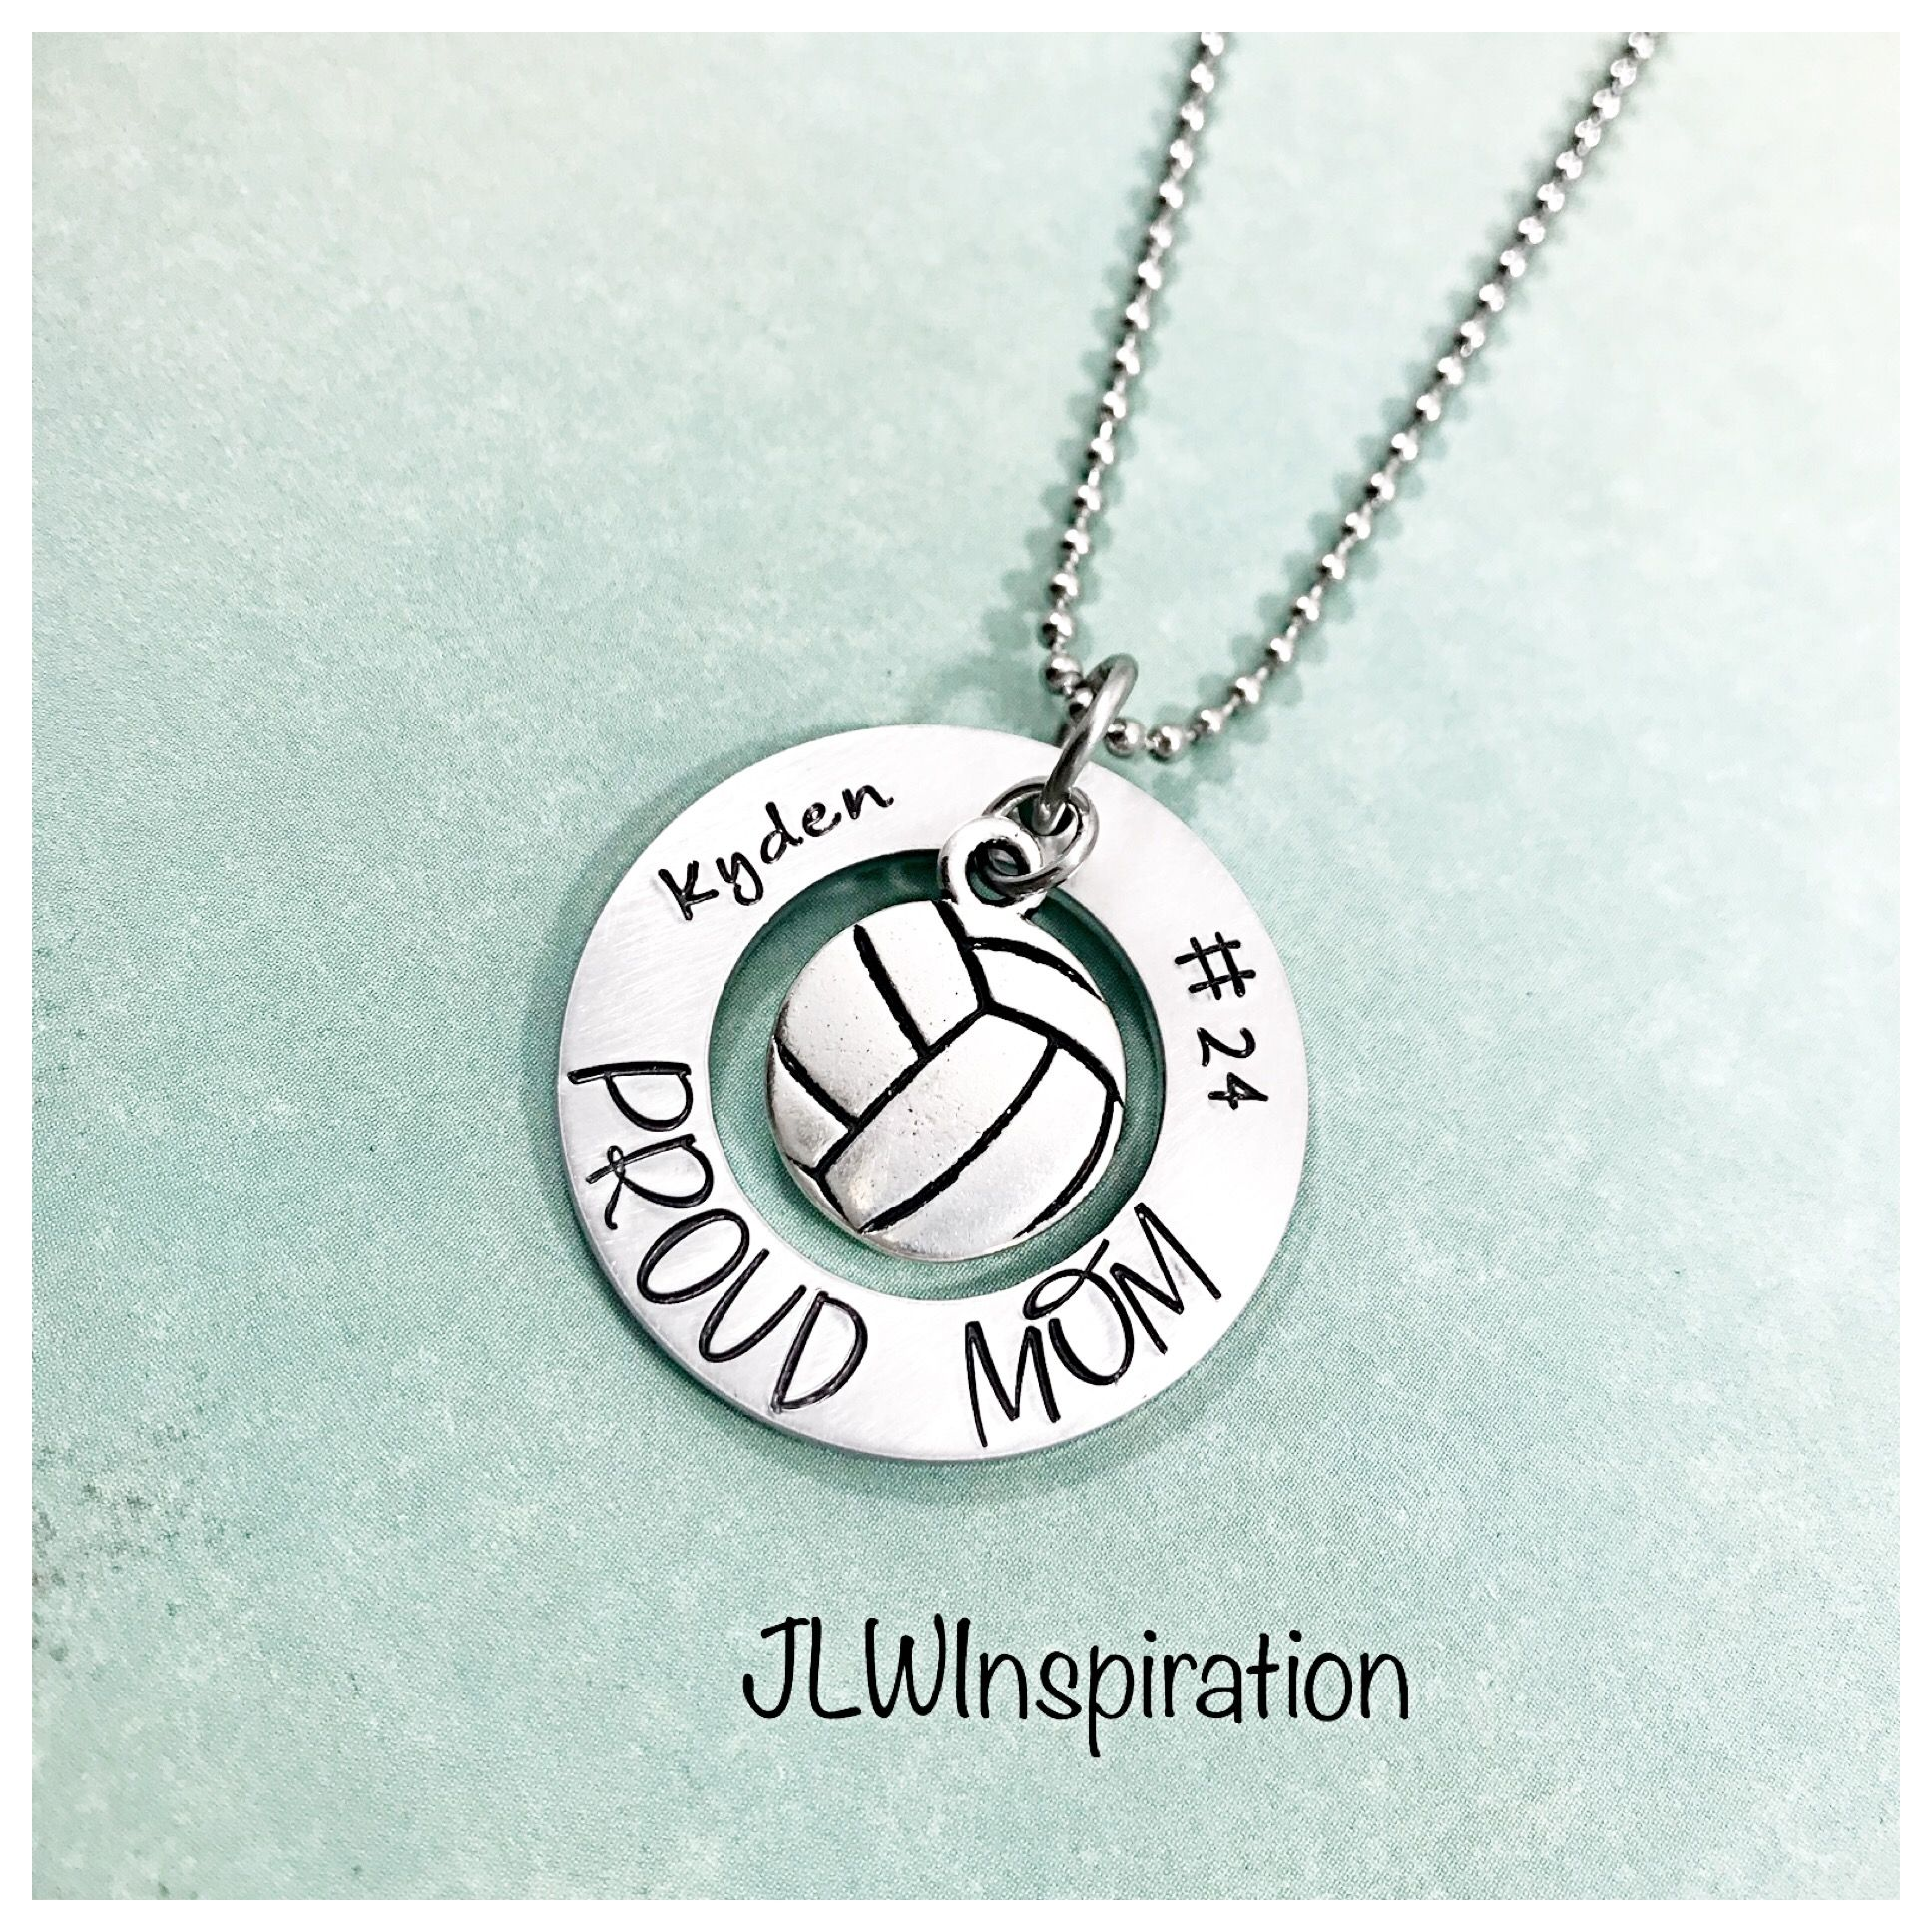 Www Jlwinspiration Com With Images Volleyball Necklace Necklace Proud Mom